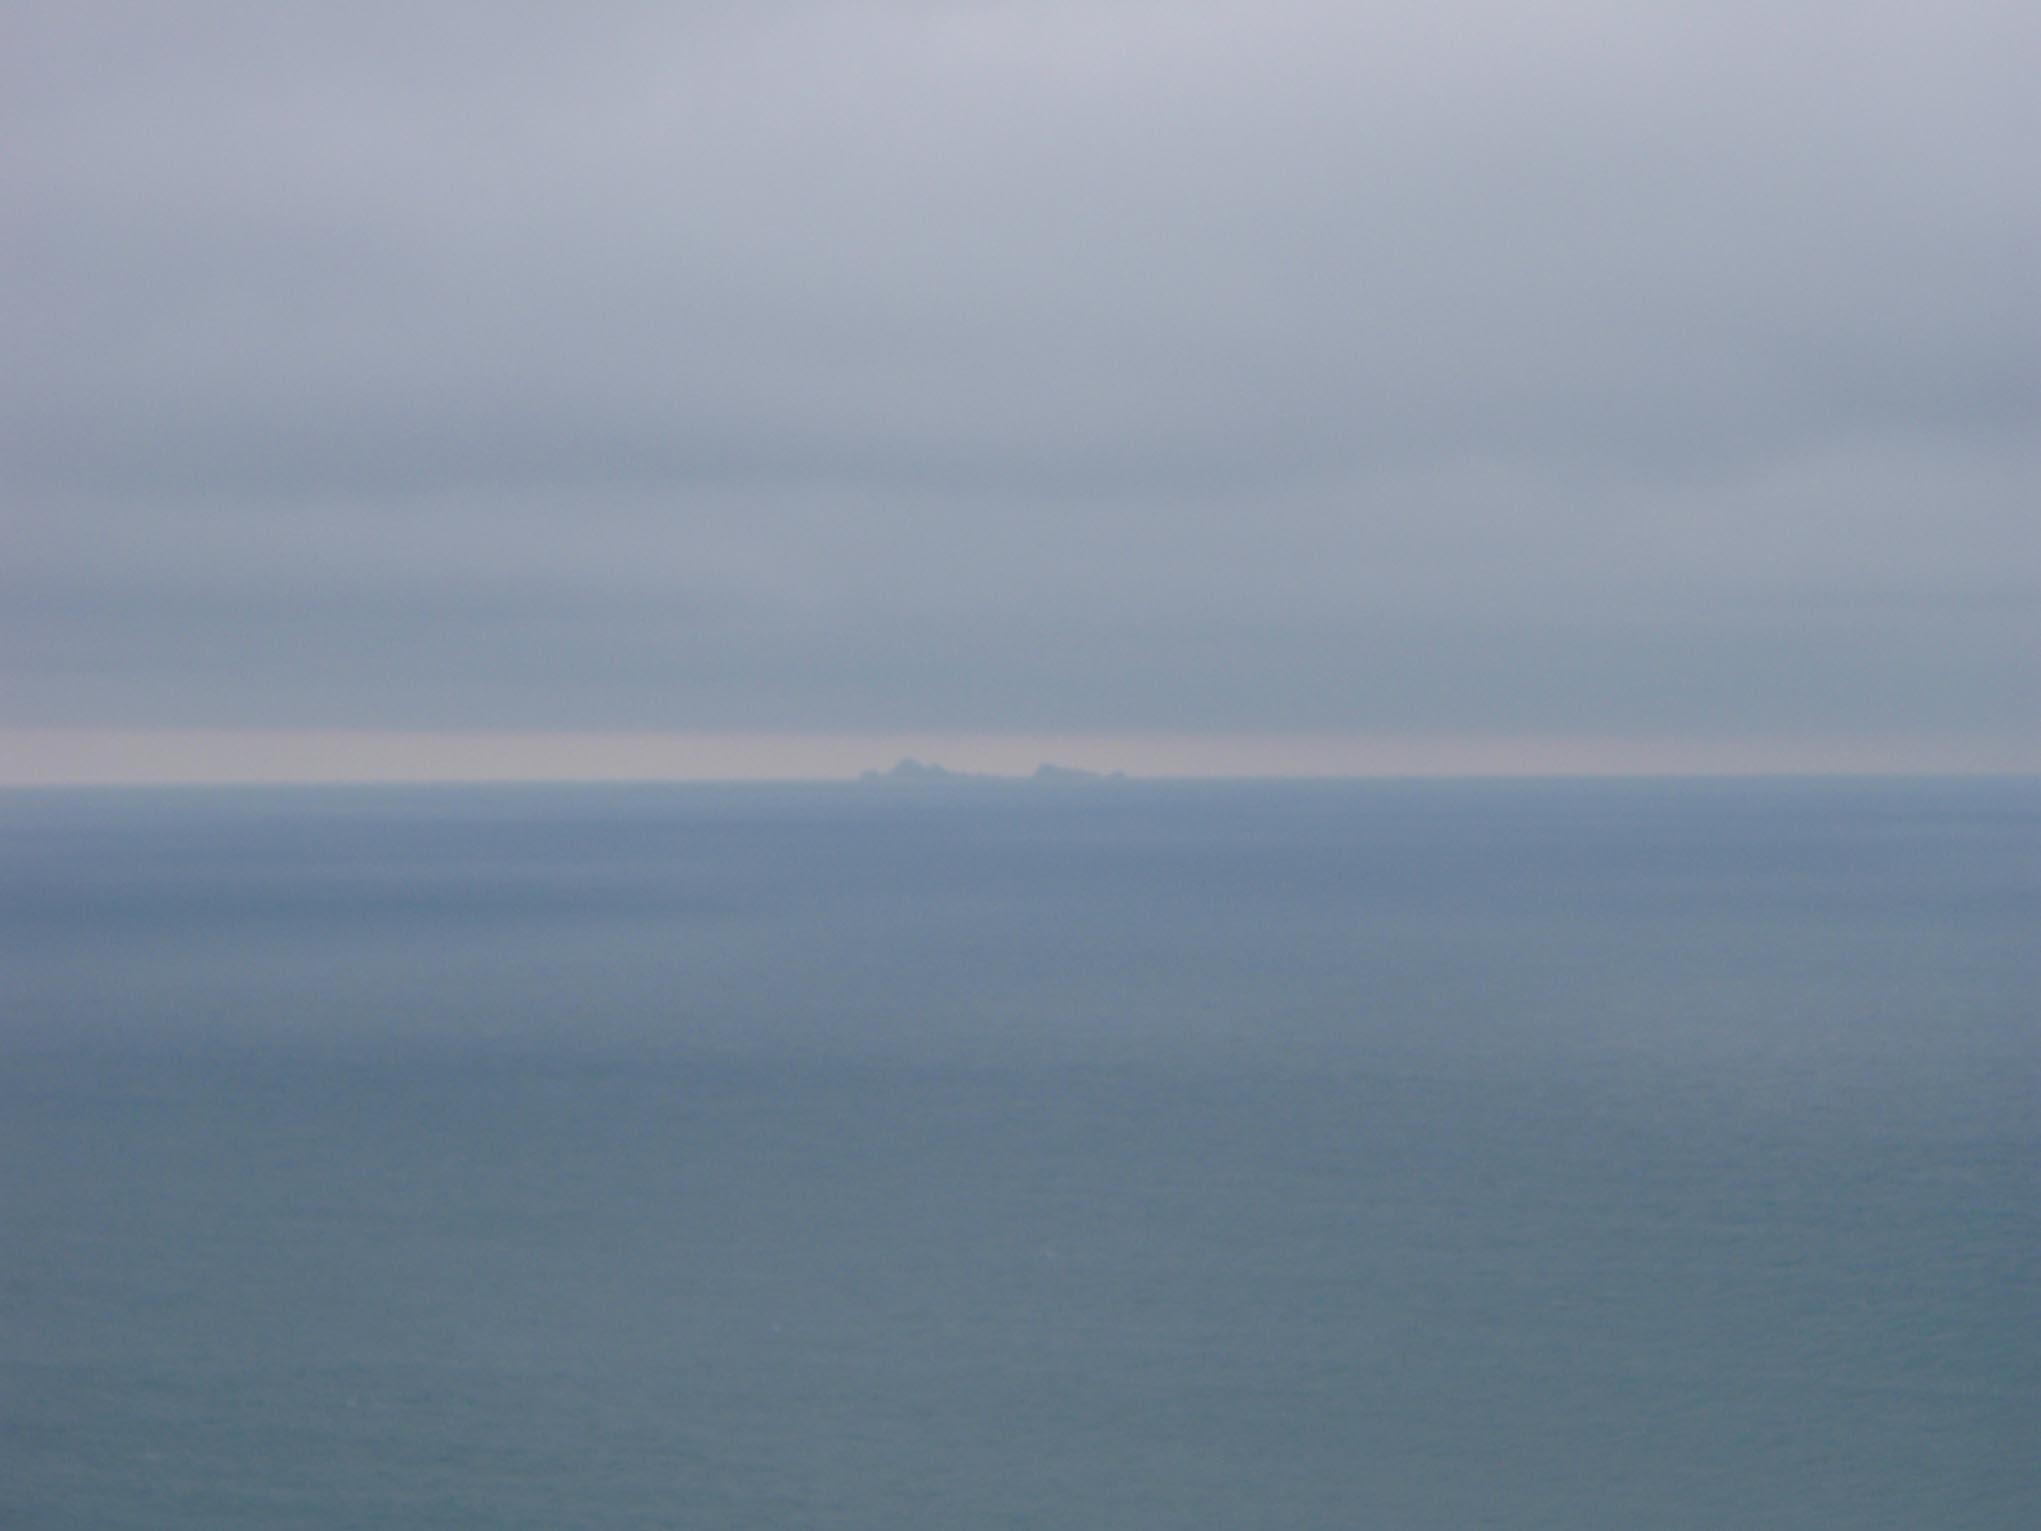 Point Reyes Seashore - look in the distance